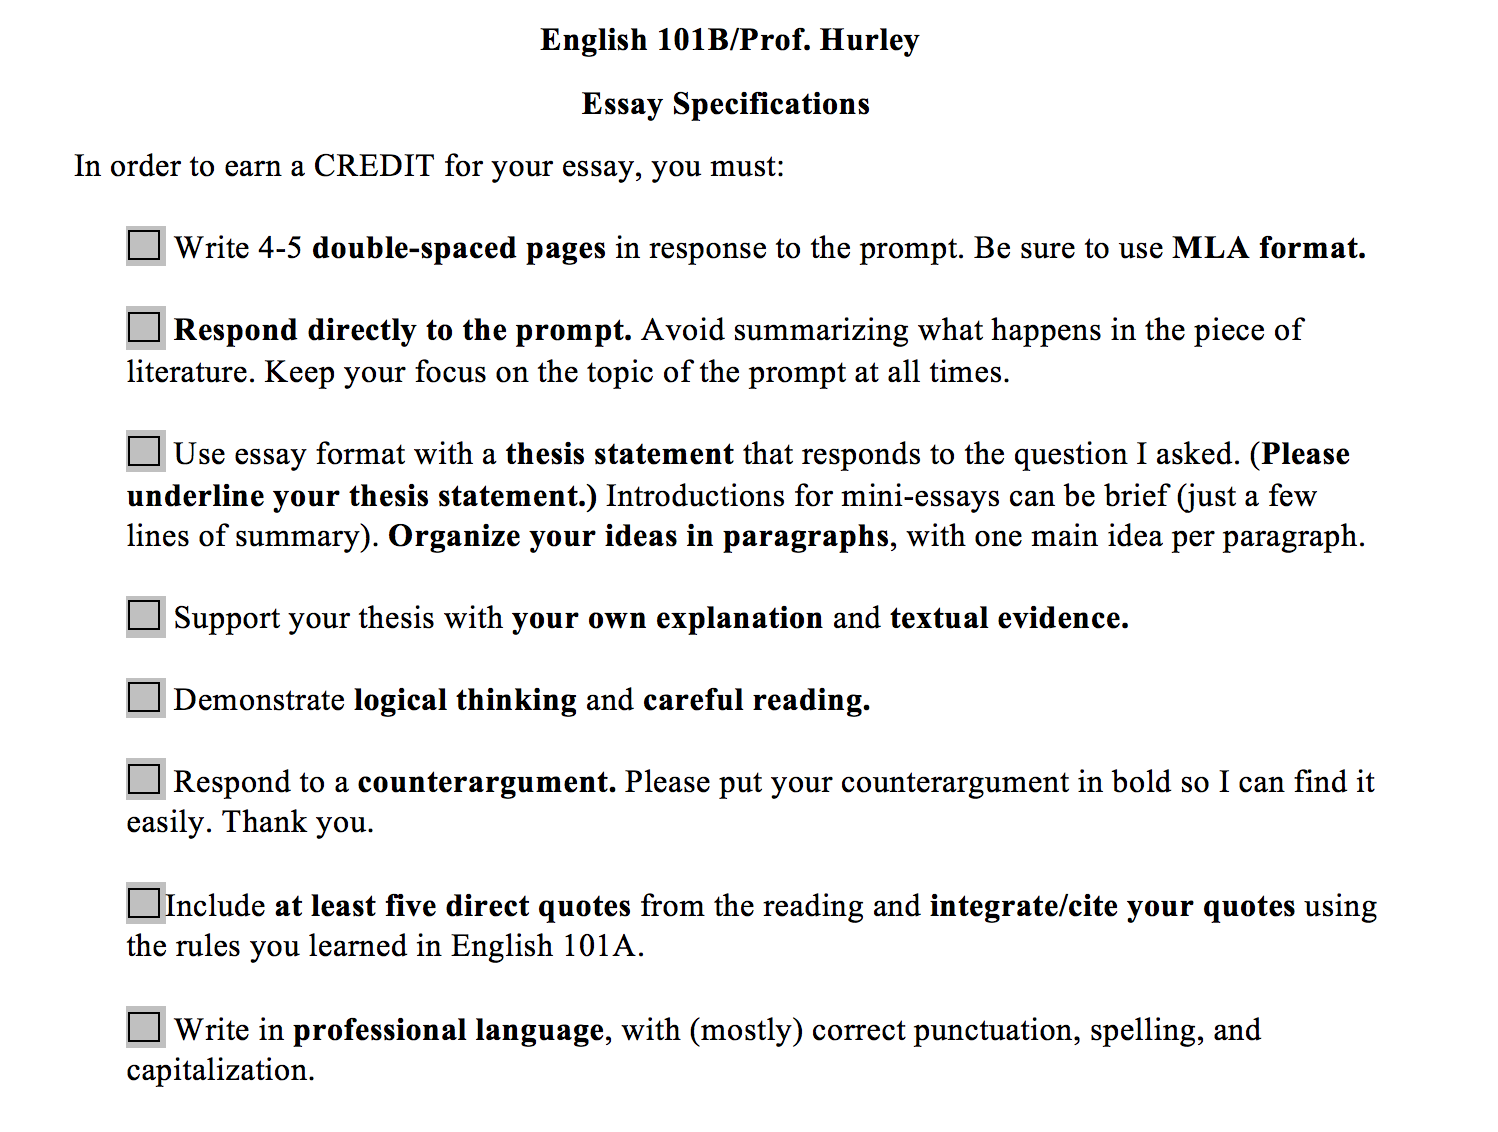 012 1bsged7ard3msw0obrhnp0a Essay Example How To Cite Evidence In Magnificent An Website Textual Full